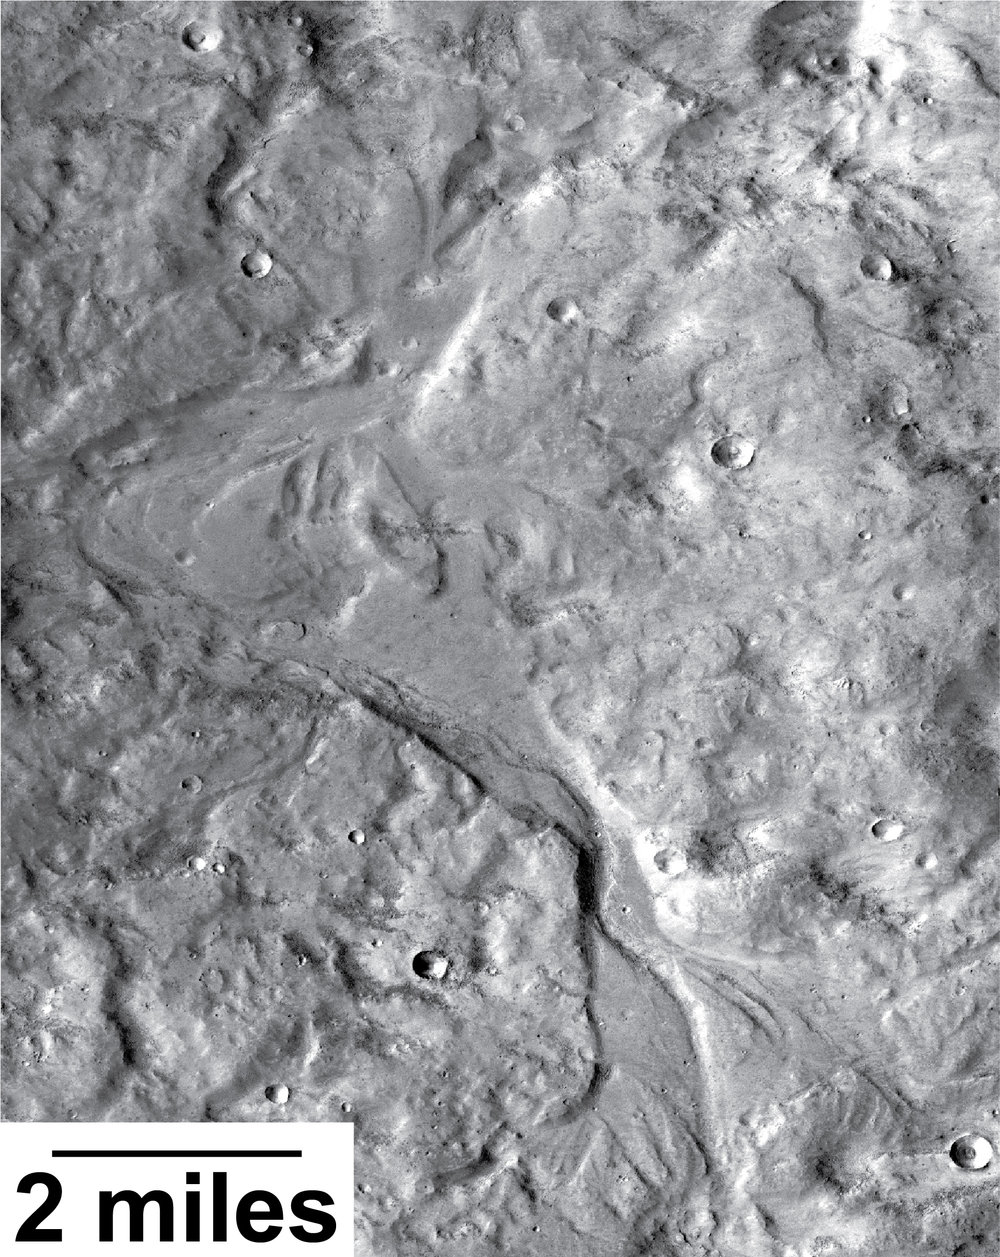 Streamlined forms in this Martian valley resulted from the outflow of a lake hundreds of millions years more recently than an era of Martian lakes previously confirmed. This image from the Context Camera on NASA's Mars Reconnaissance Orbiter covers an area in Arabia Terra about 8 miles wide. - Image   Credits: NASA/JPL-Caltech/MSSS